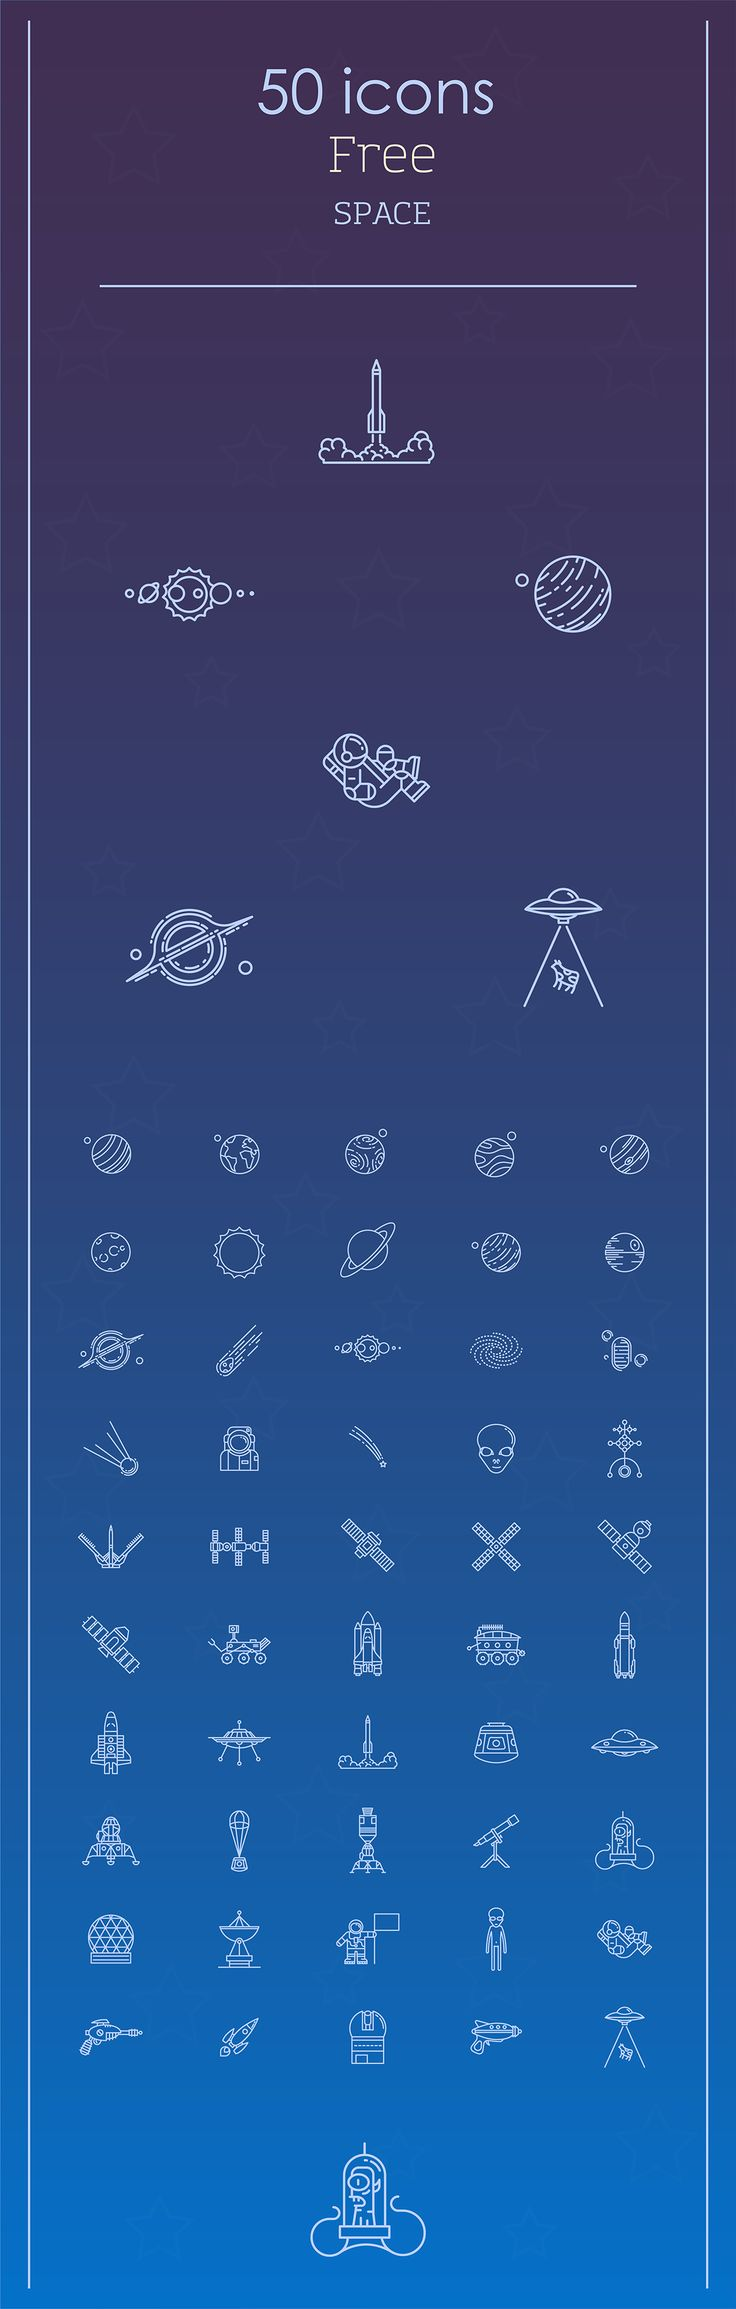 Space icons set on Behance